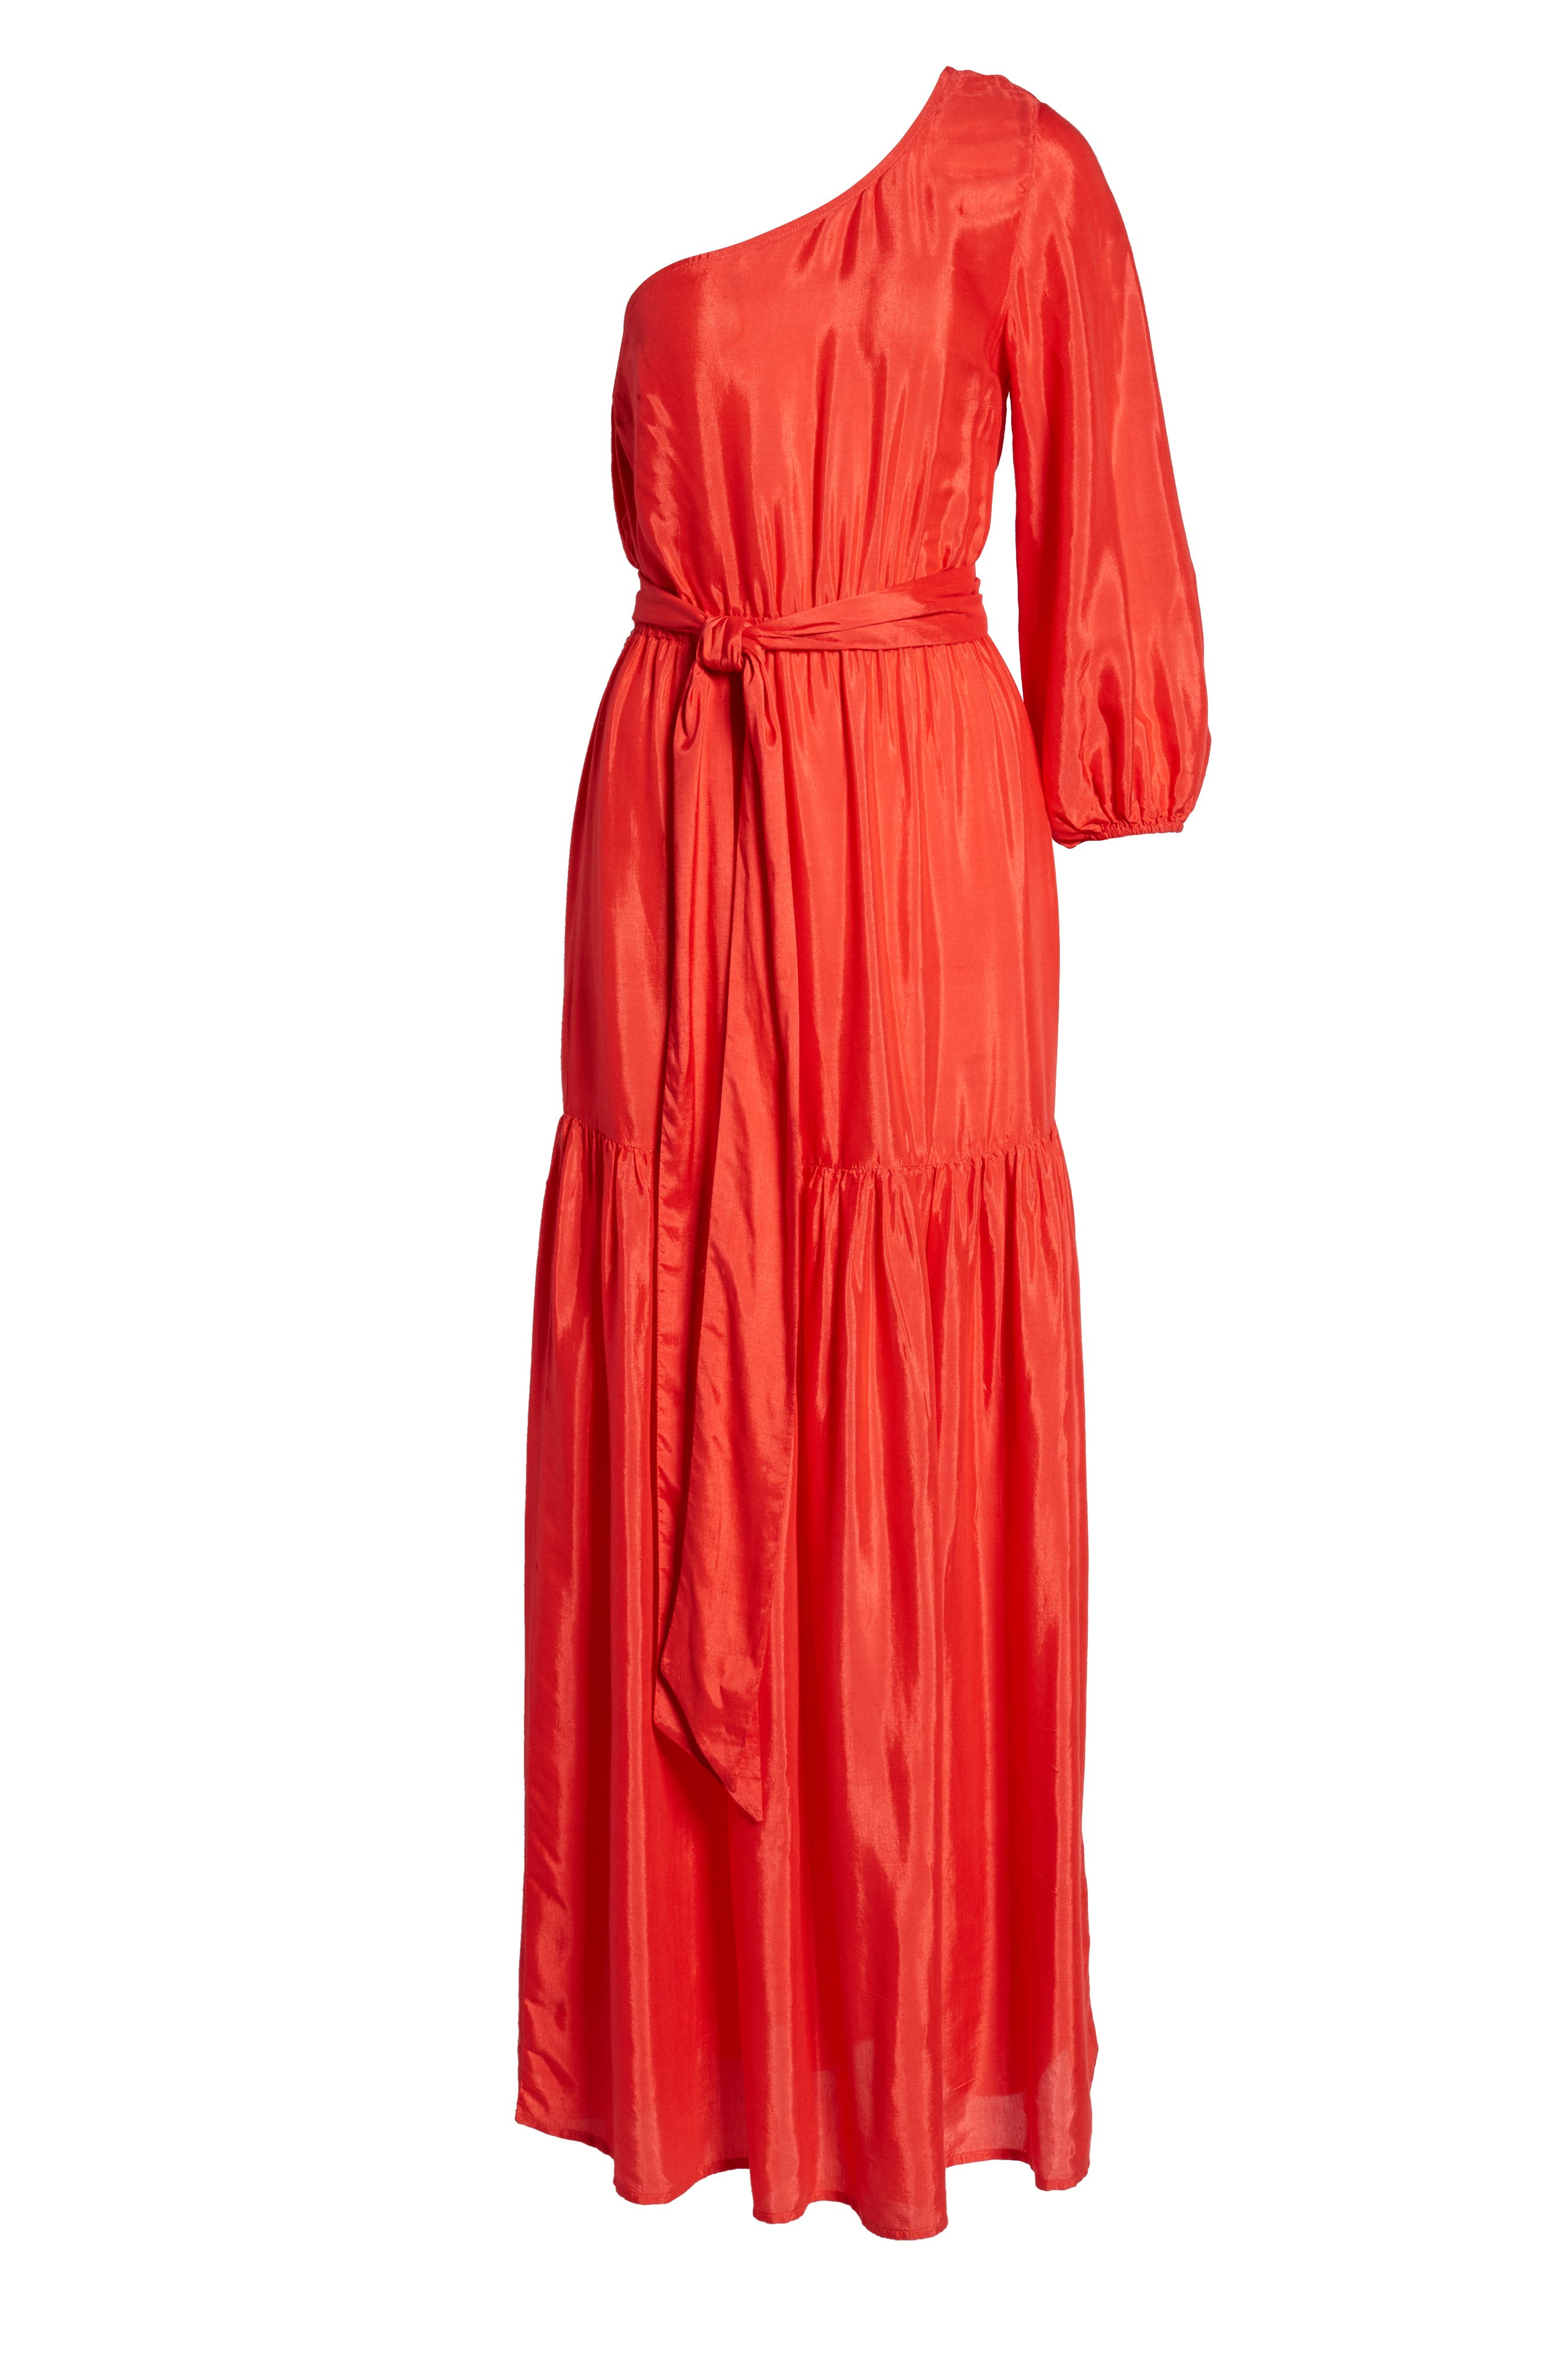 One-Shoulder Maxi Dress,                             Alternate thumbnail 7, color,                             Bright Red